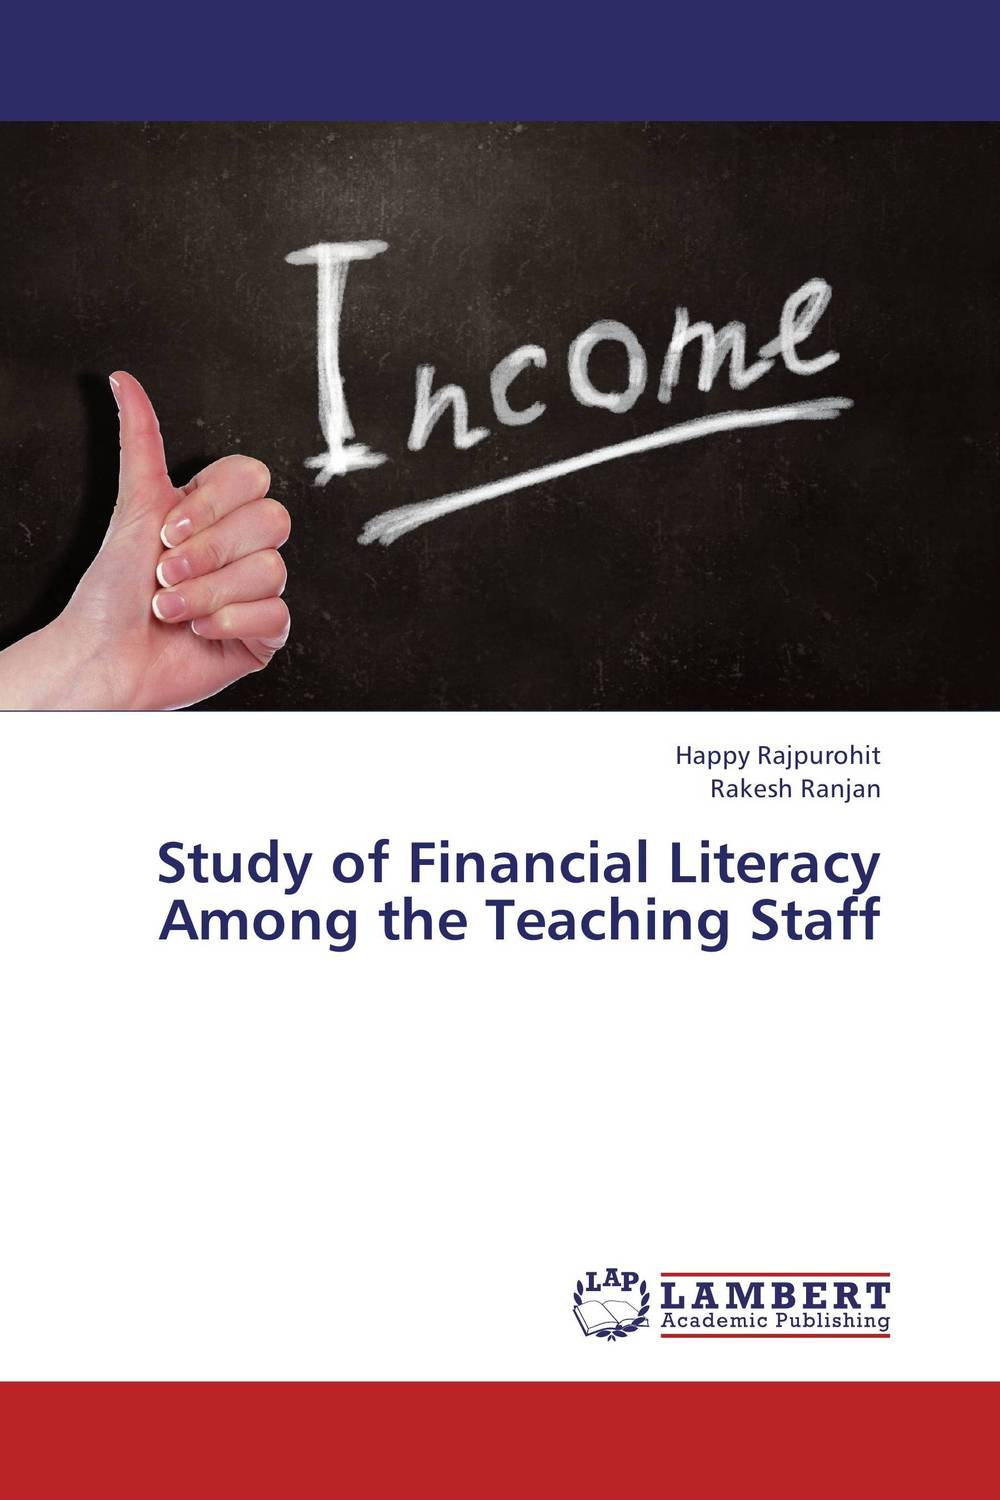 Study of Financial Literacy Among the Teaching Staff environmental literacy of undergraduate college students